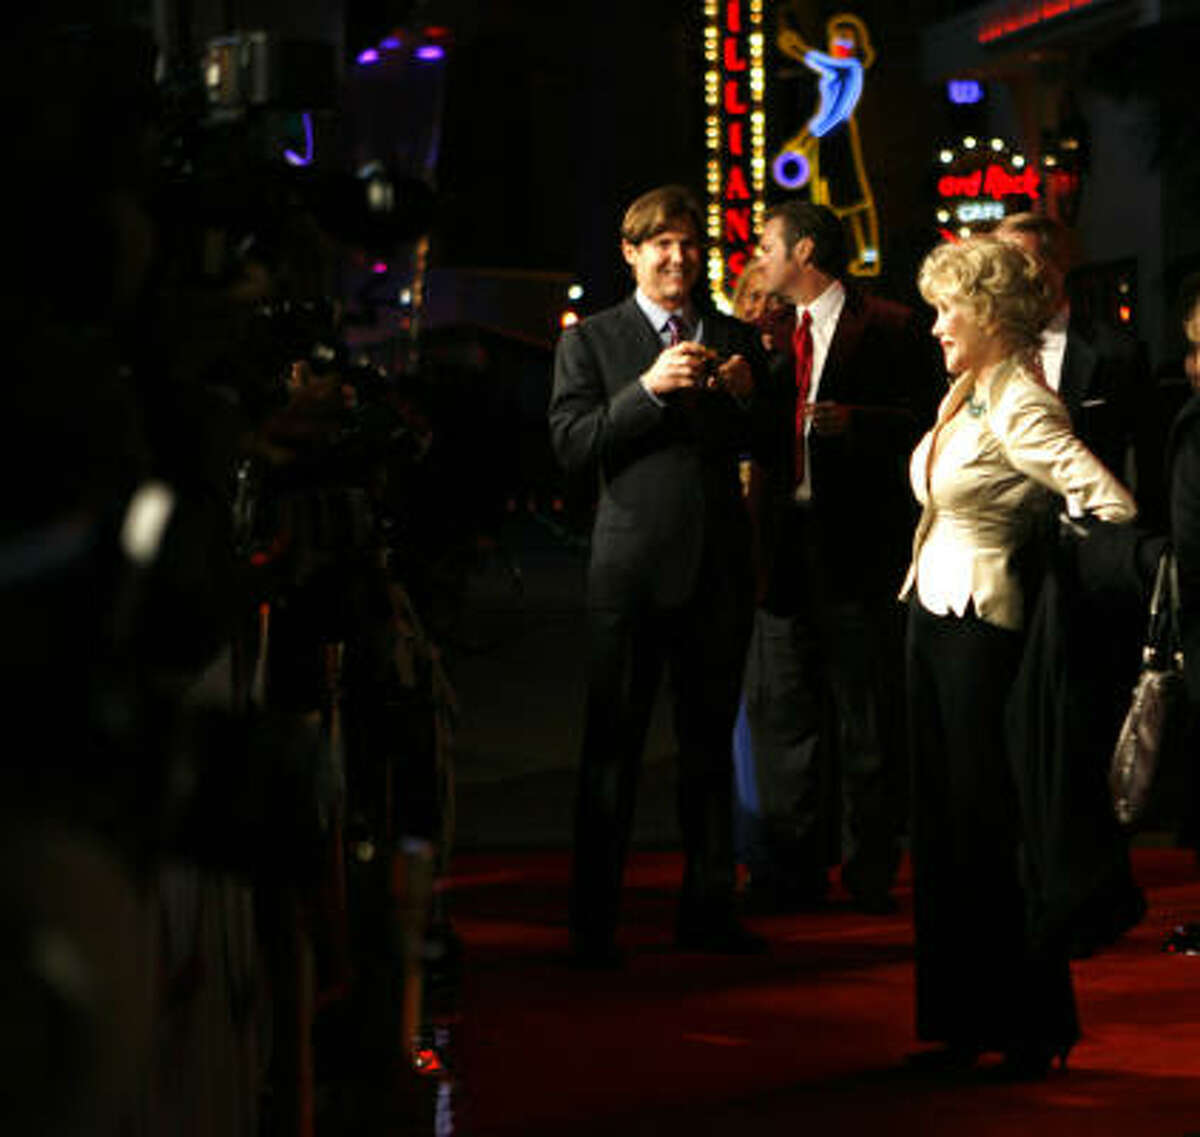 Joanne Herring stops for photographers along the red carpet during the premiere.